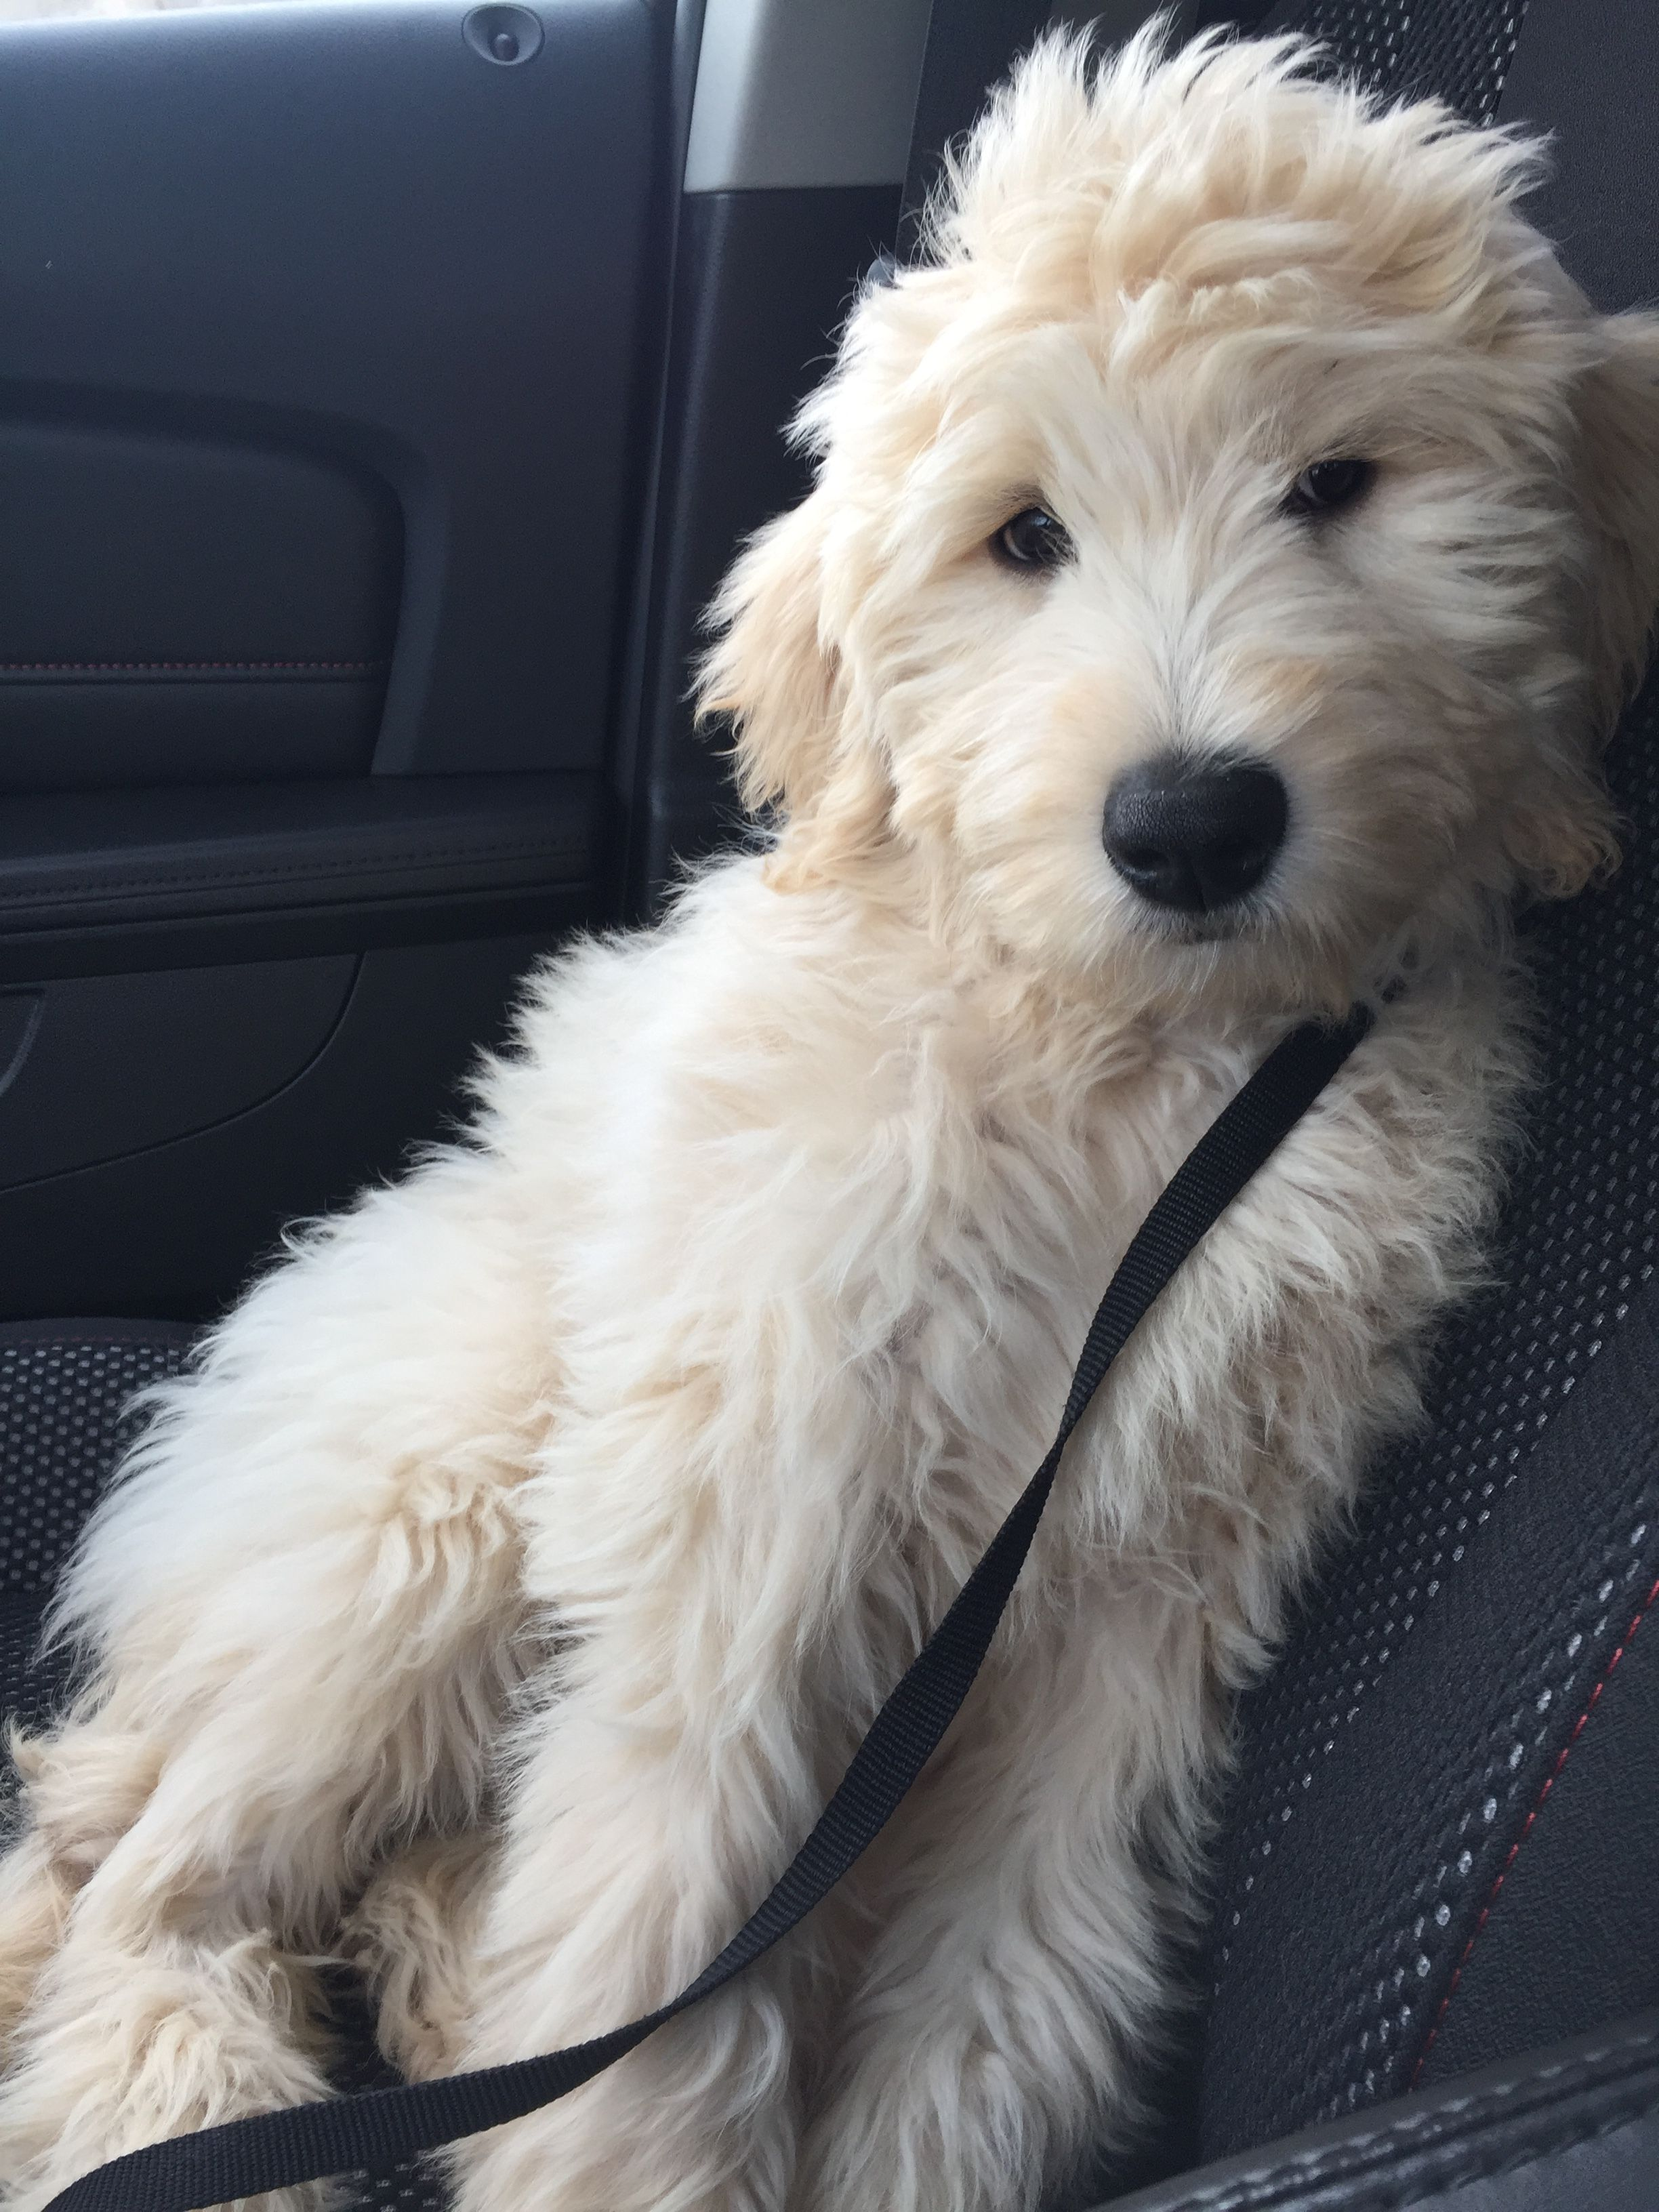 My goldendoodle, Lucy Puppies, Goldendoodle, Dogs